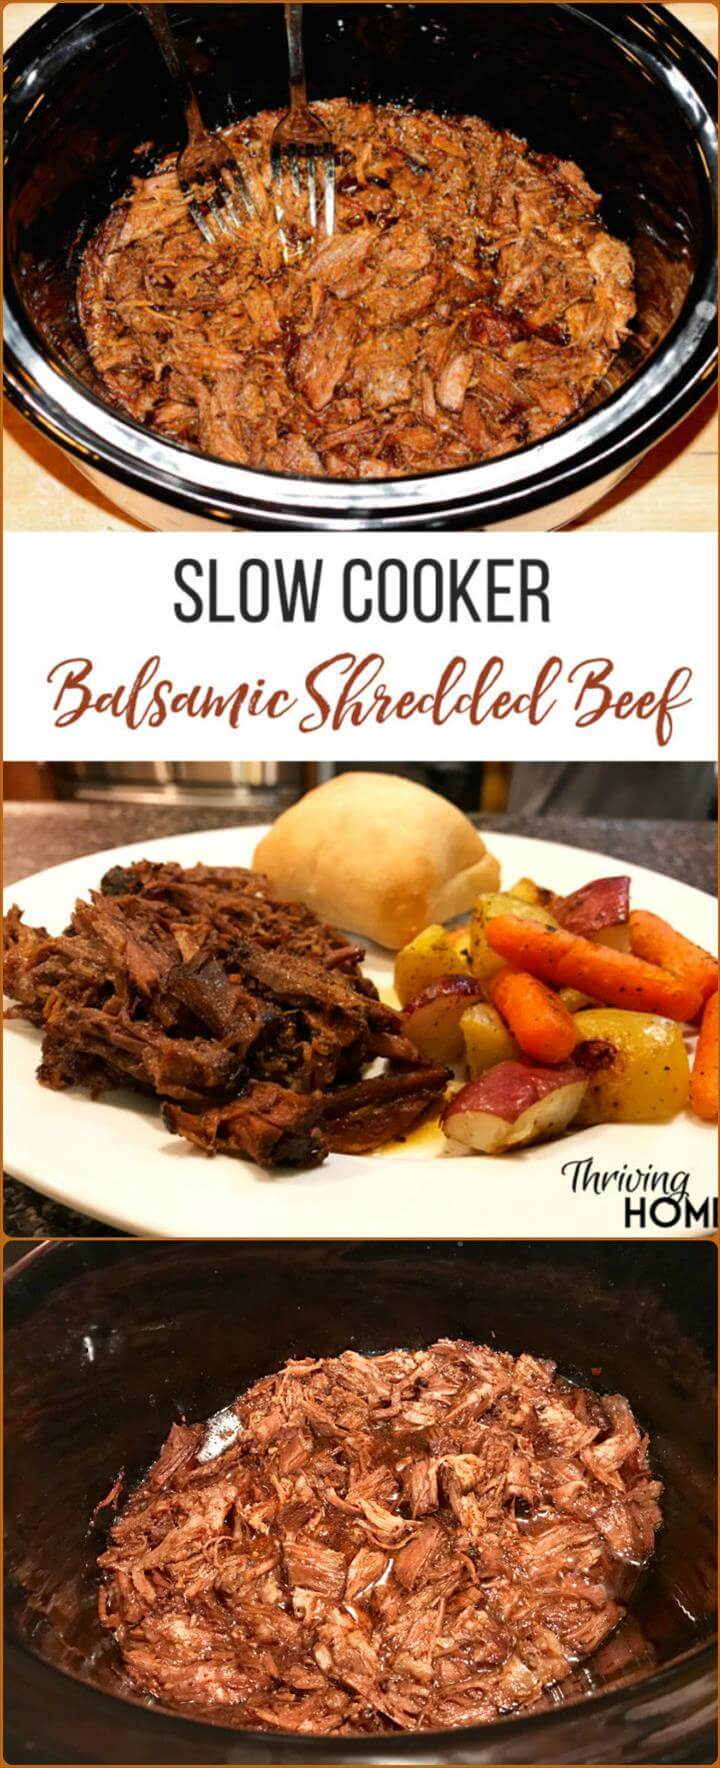 slow cooker balsamic shredded beef crowd meal